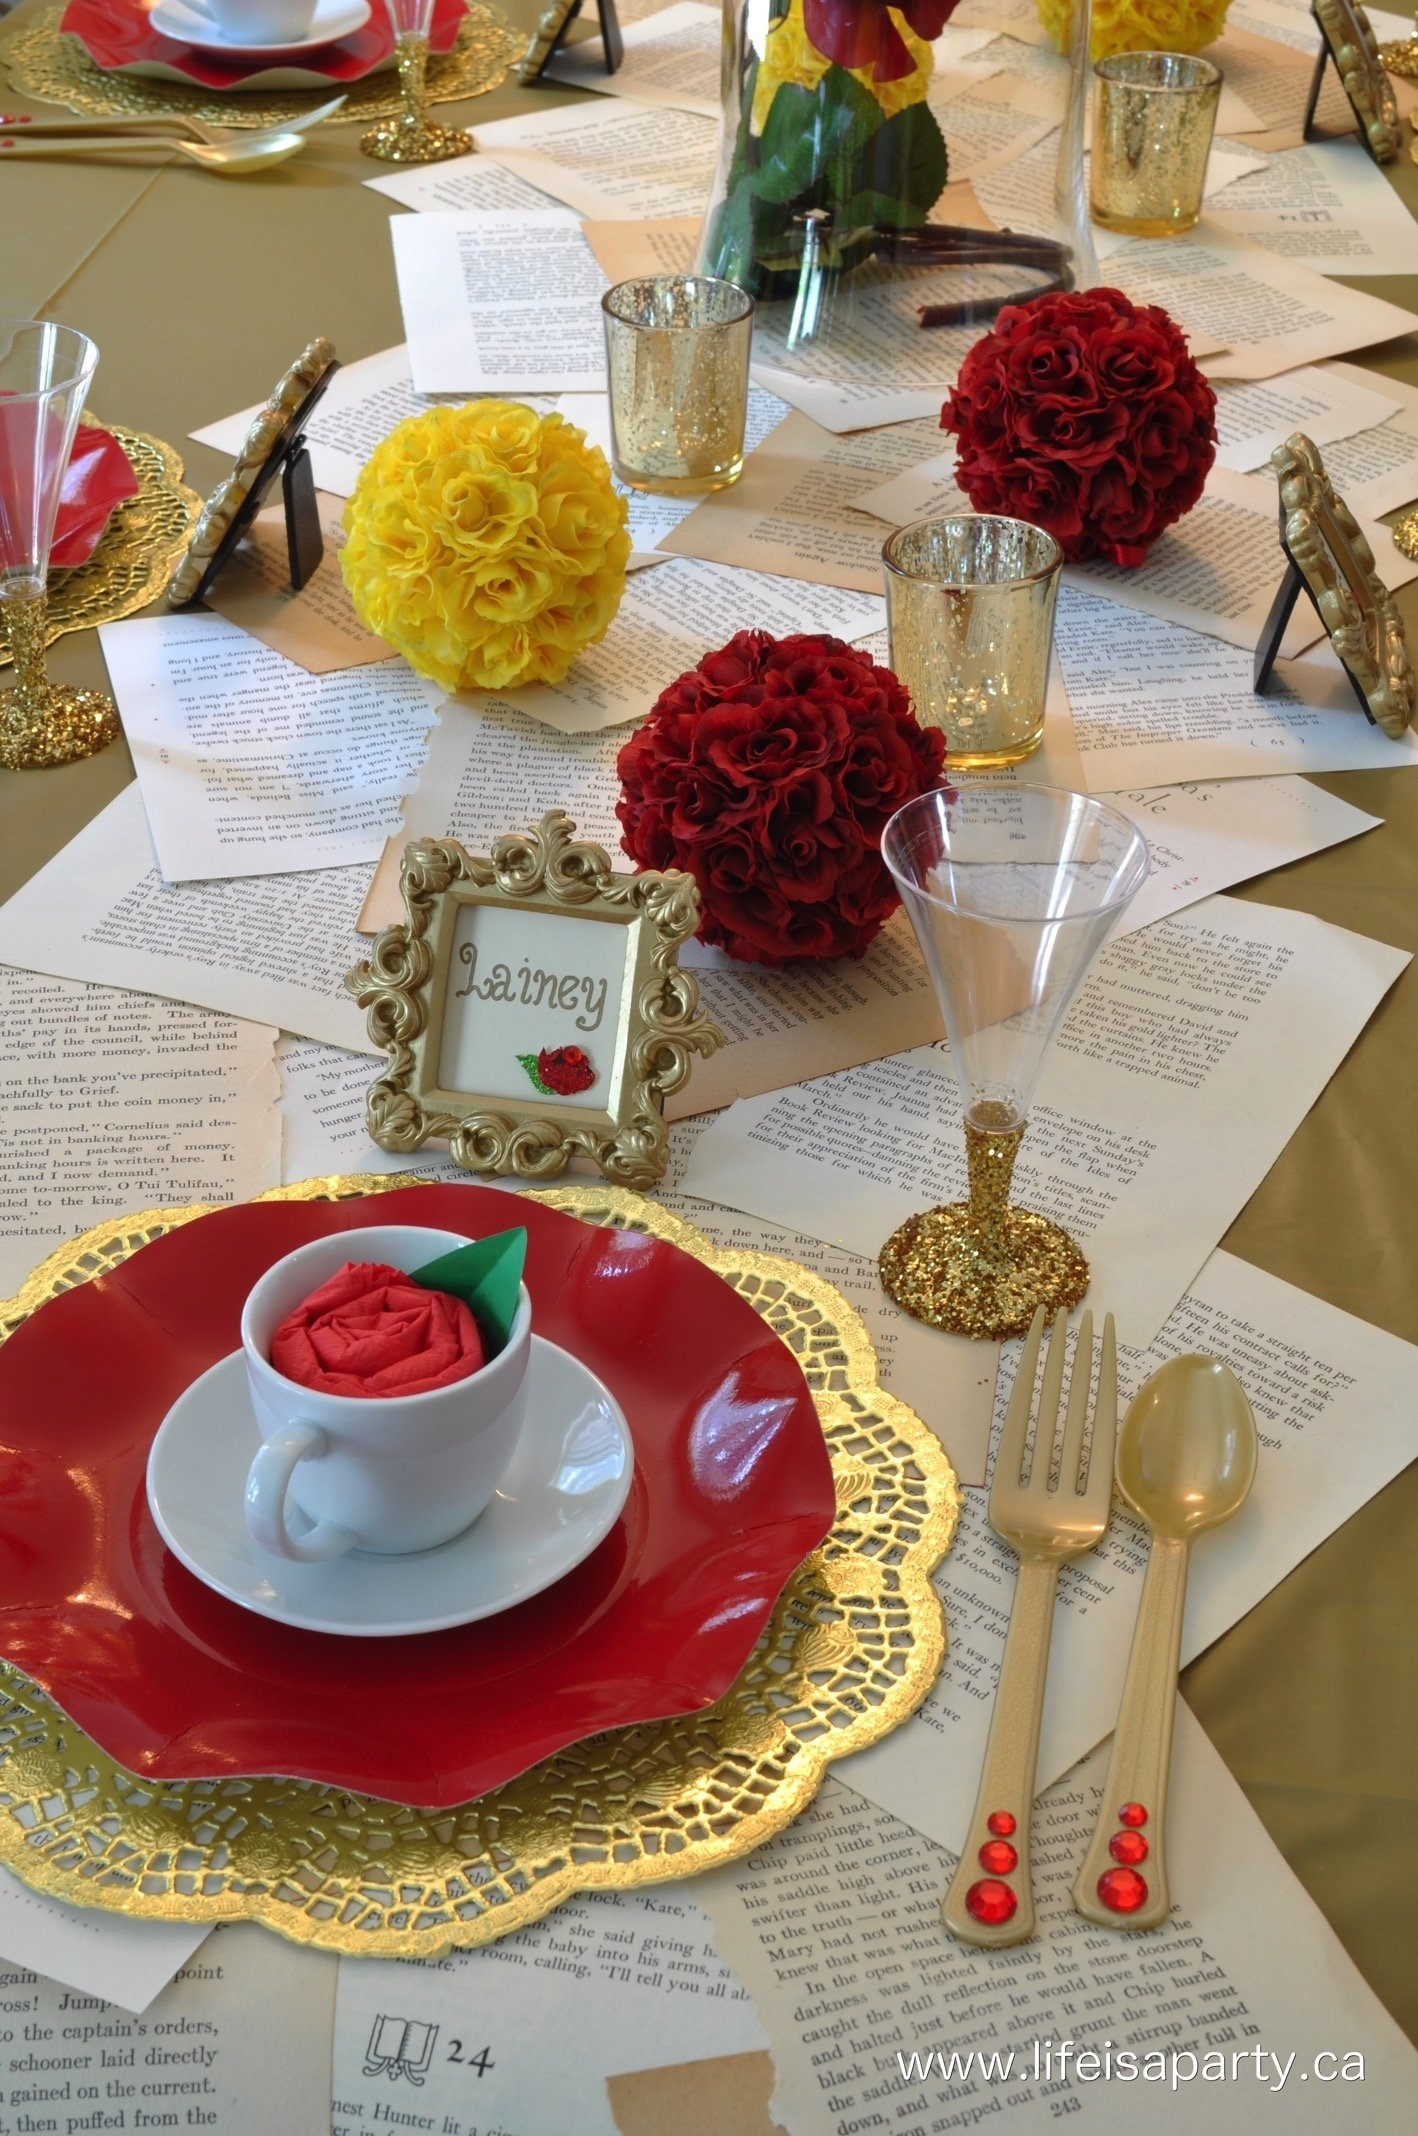 10 Great Beauty And The Beast Party Ideas beauty and the beast party decorations and food 1 2021